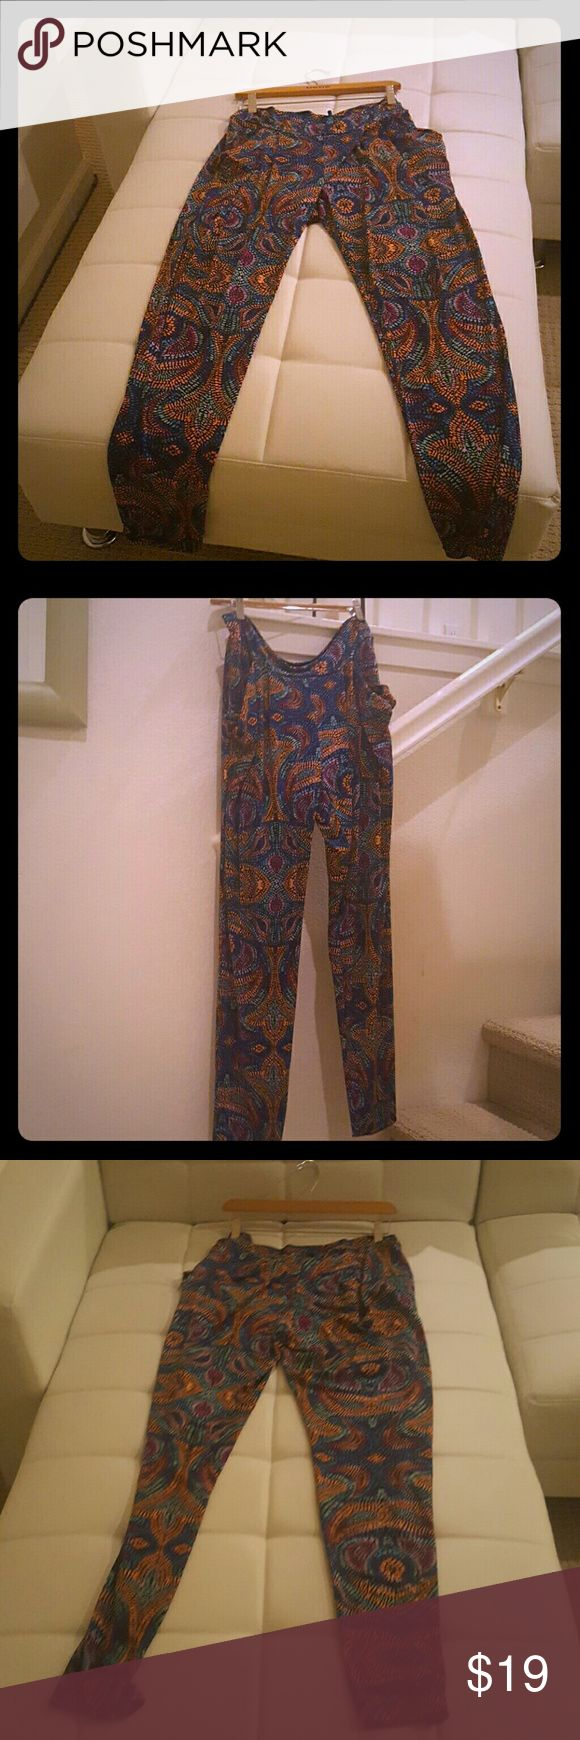 bebe Harlem  pants high waist One of my favorite harlem pants from bebe.  There a large but can  be  a medium  or large depending if u want  baggy   and your a medium it will work or  if you want some  tight fittiing  with a very slight baggy feeling and your a  large  it will work as well.  U can rock this with denim shirt tied up , crop top,  and or  wife beater. Parsley  Print will never go out of style. bebe  Pants Leggings